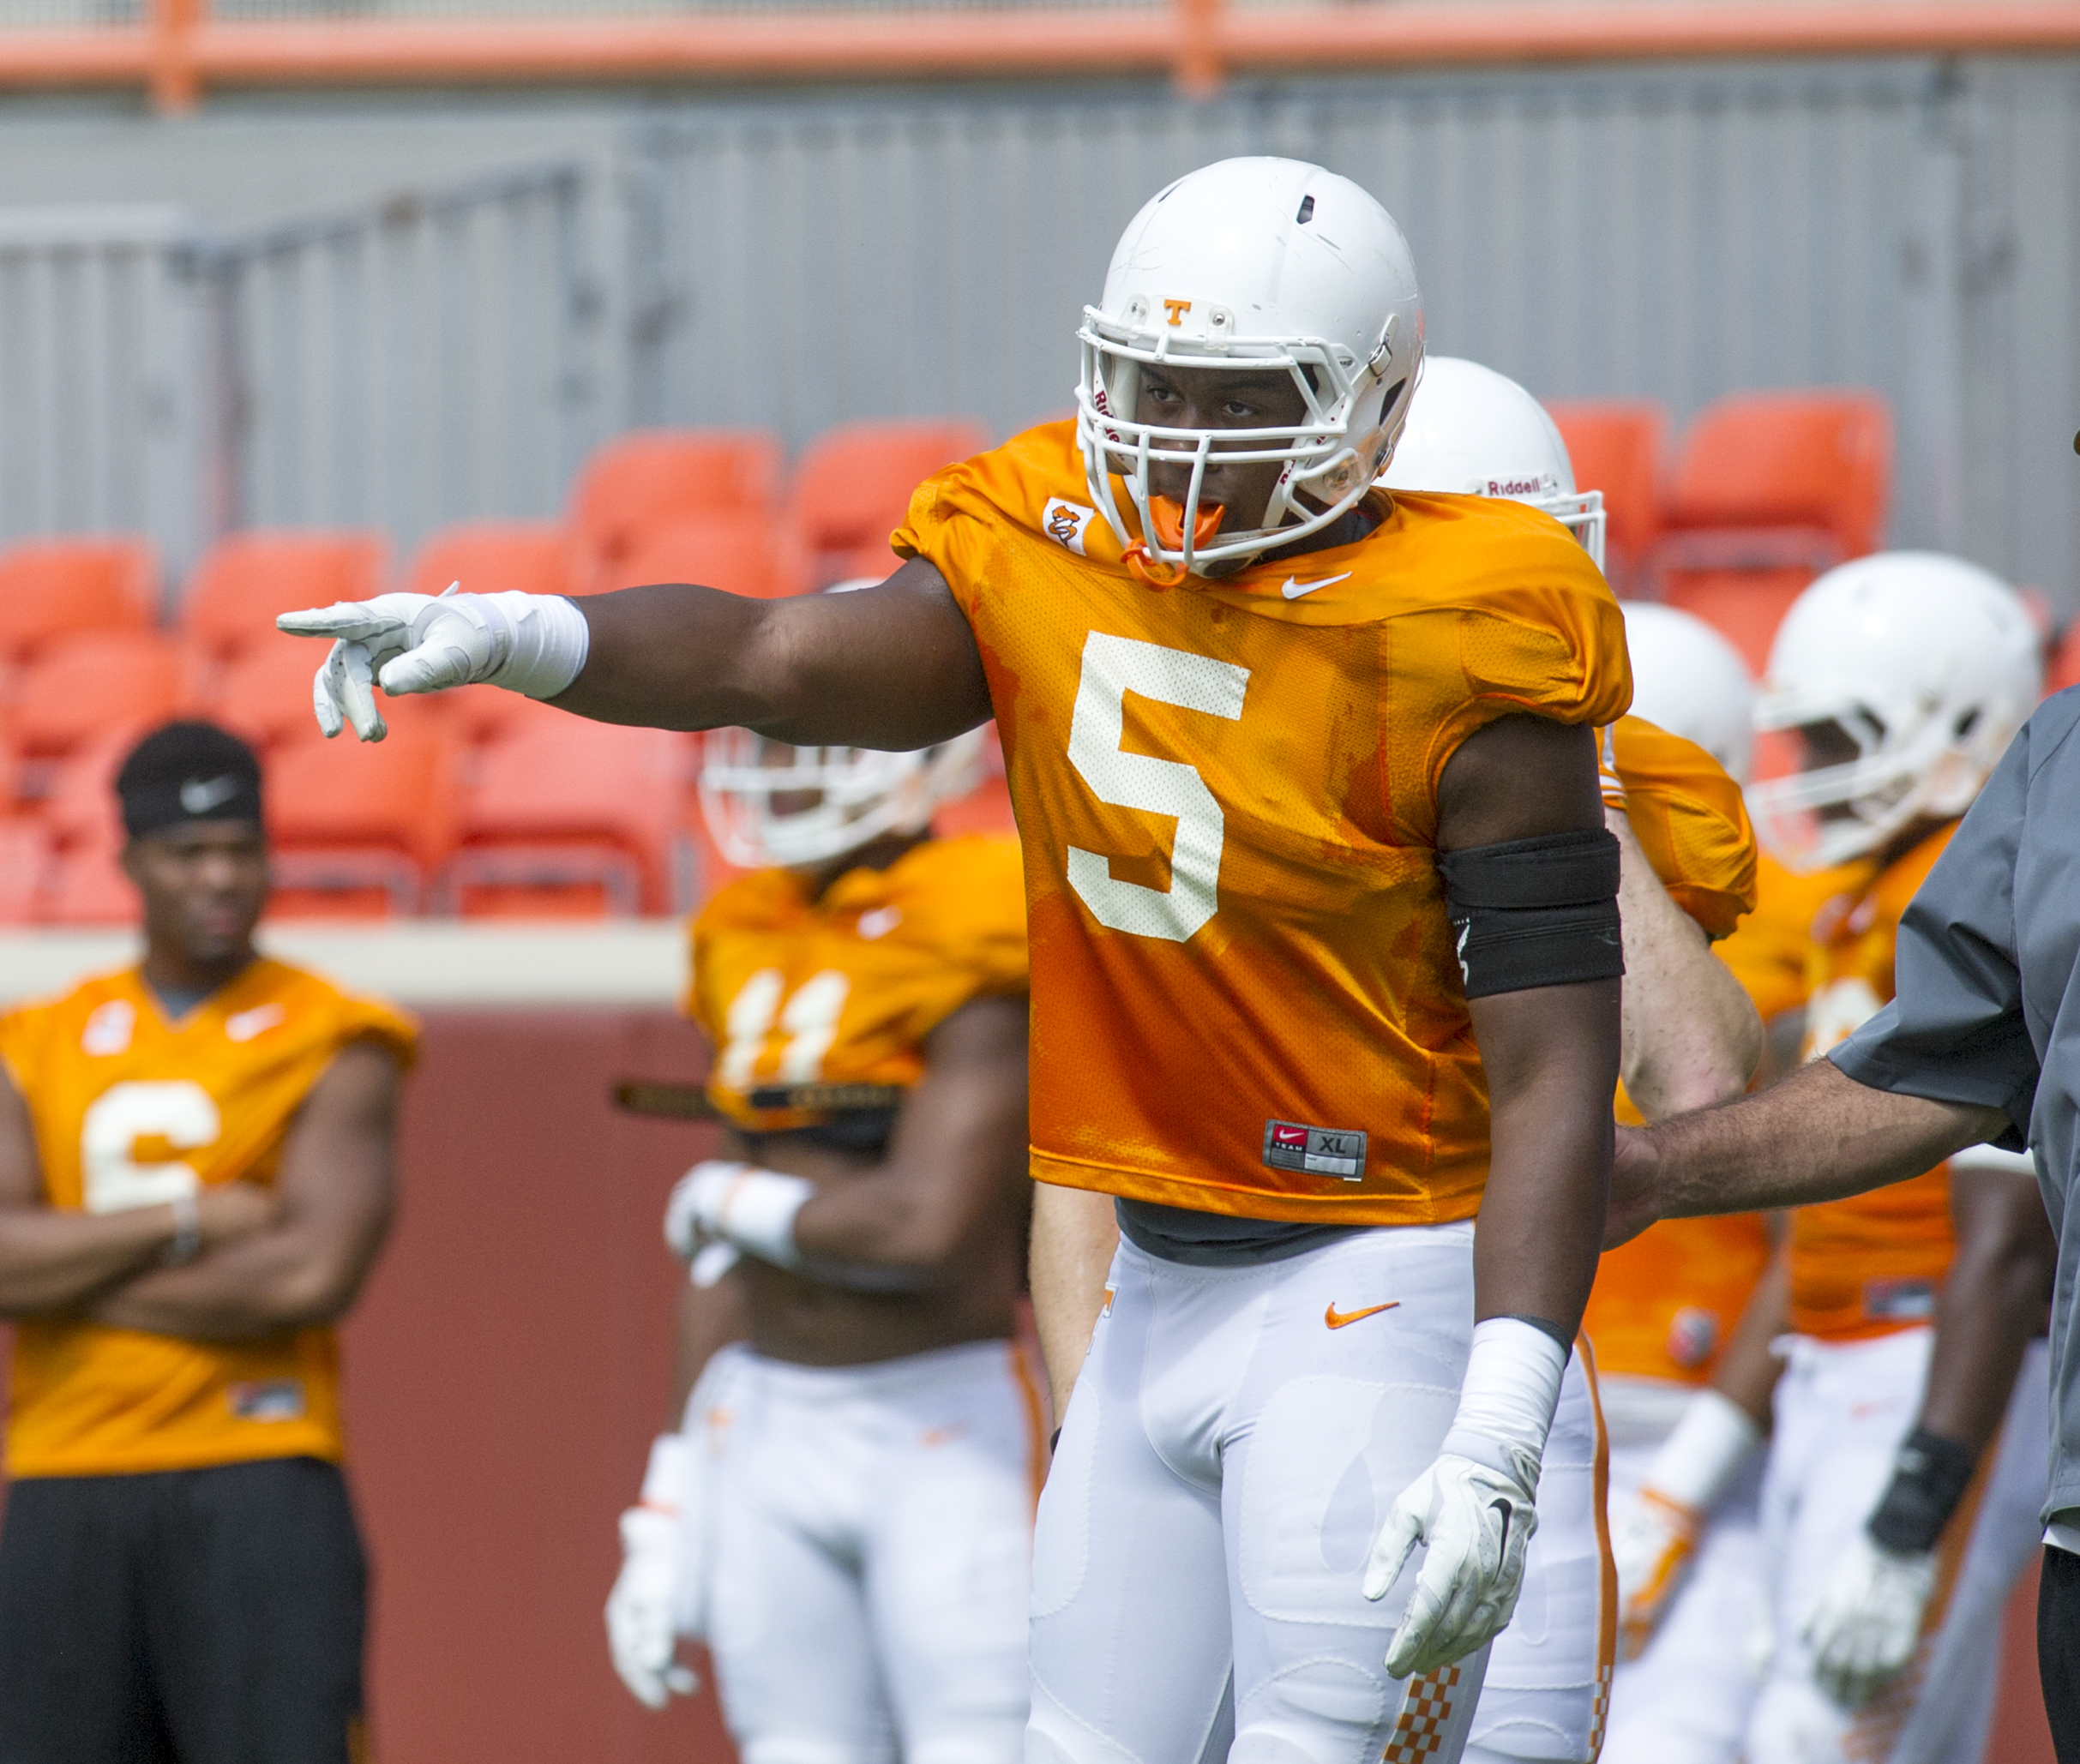 Tennessee freshman defensive lineman Kyle Phillips takes part in NCAA college football practice Saturday, Aug. 22, 2015, in Knoxville, Tenn. Throughout the preseason, Phillips has garnered perhaps as much praise as any member of the Vols' heralded freshma